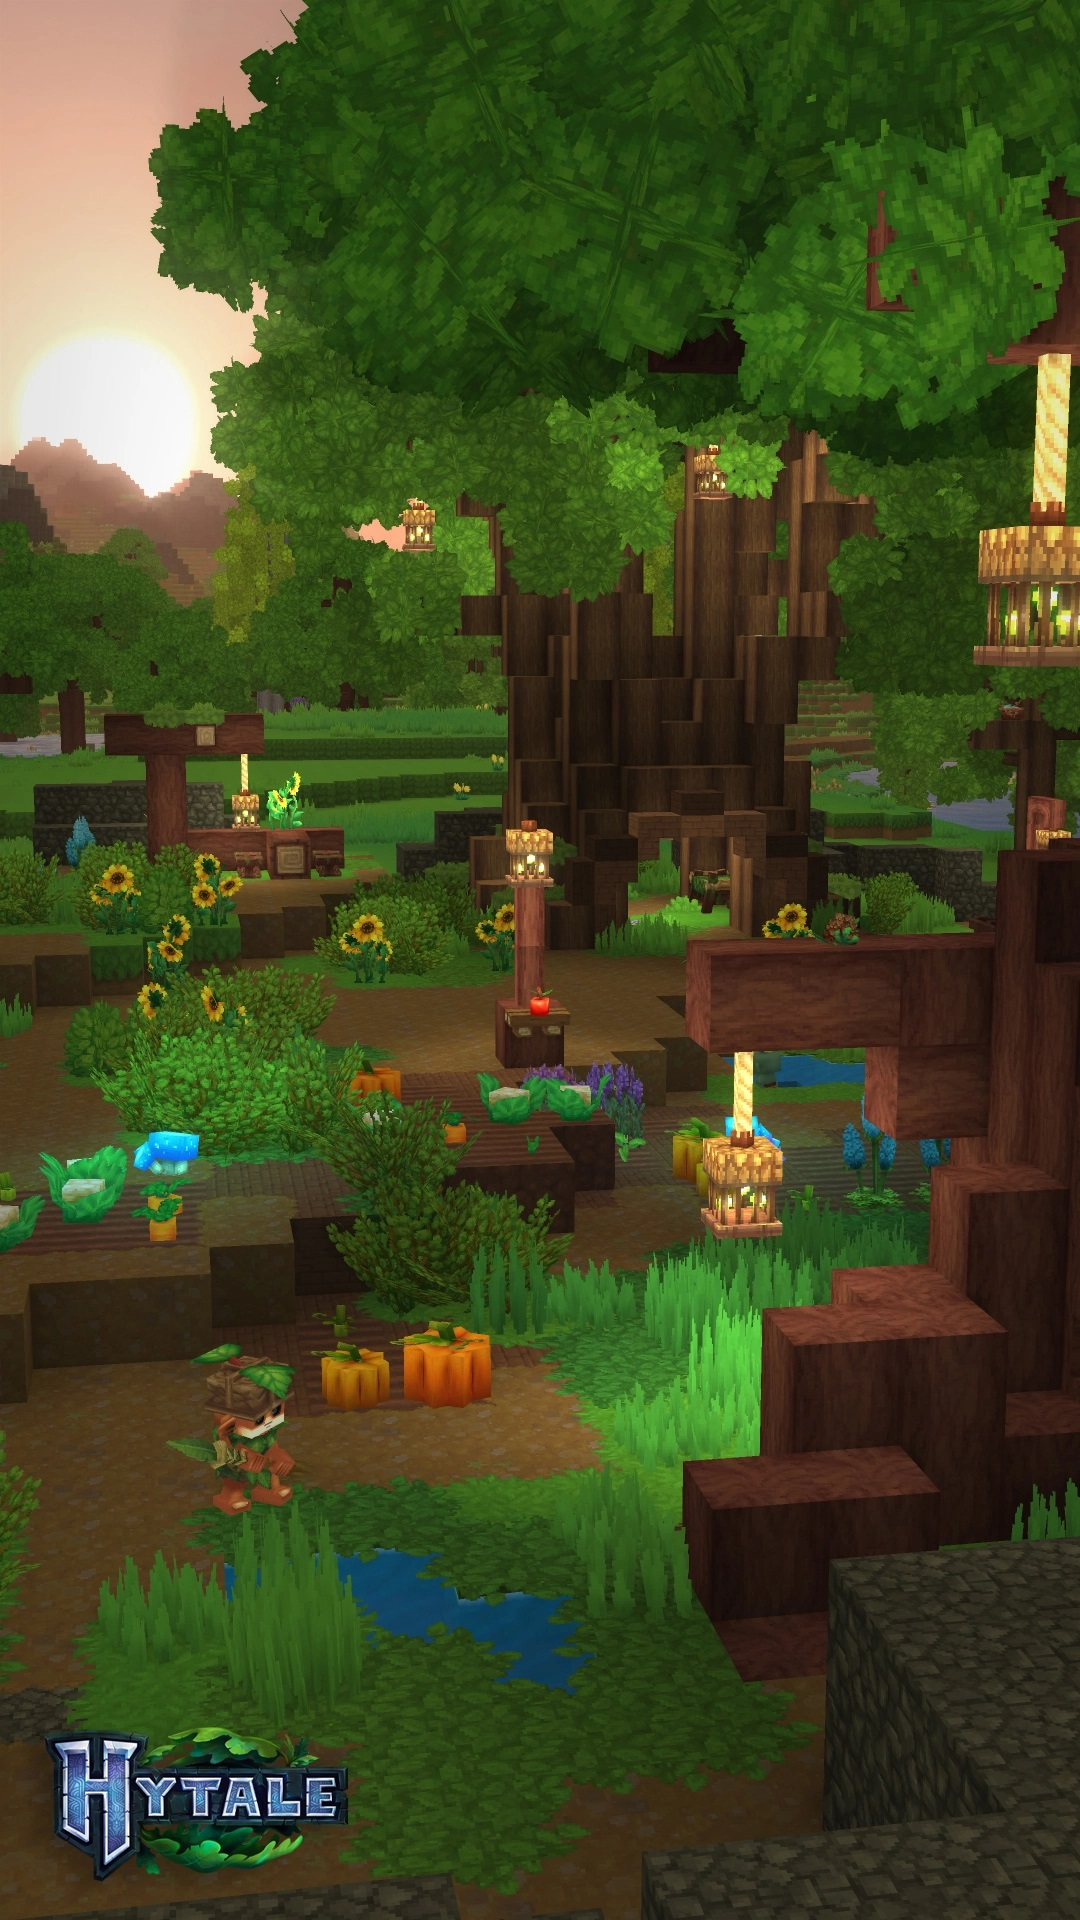 hytale-wallpapers-foret.png.jpg